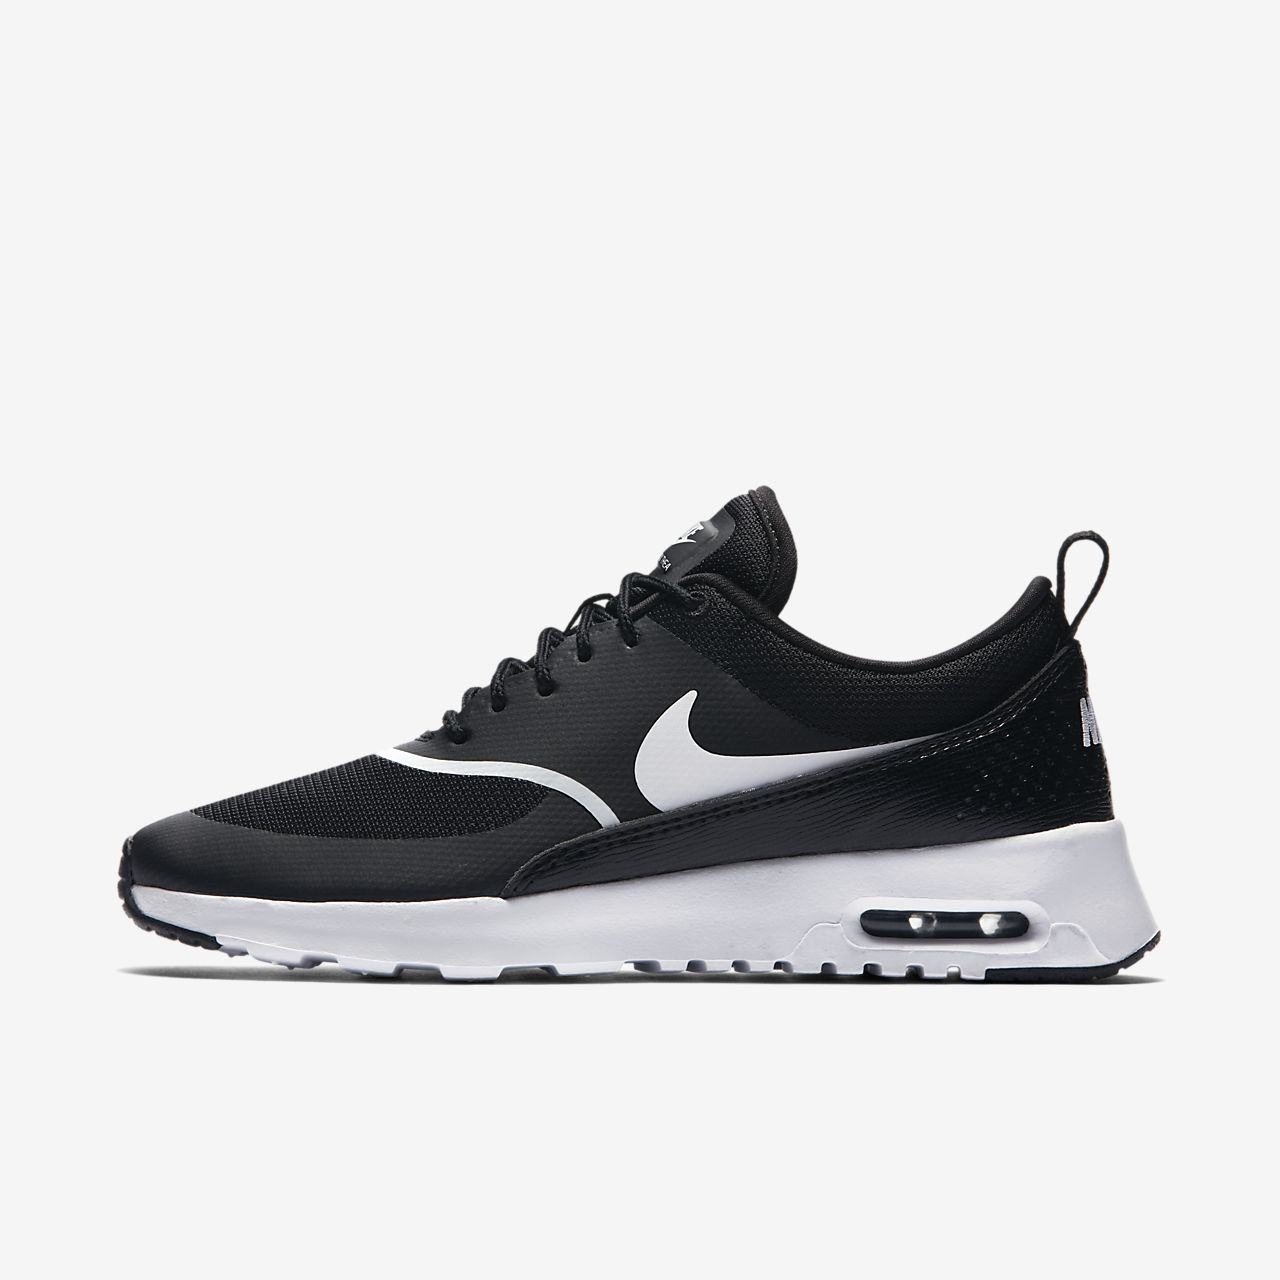 bfa693cd Nike Air Max Thea Women's Shoe. Nike.com SG